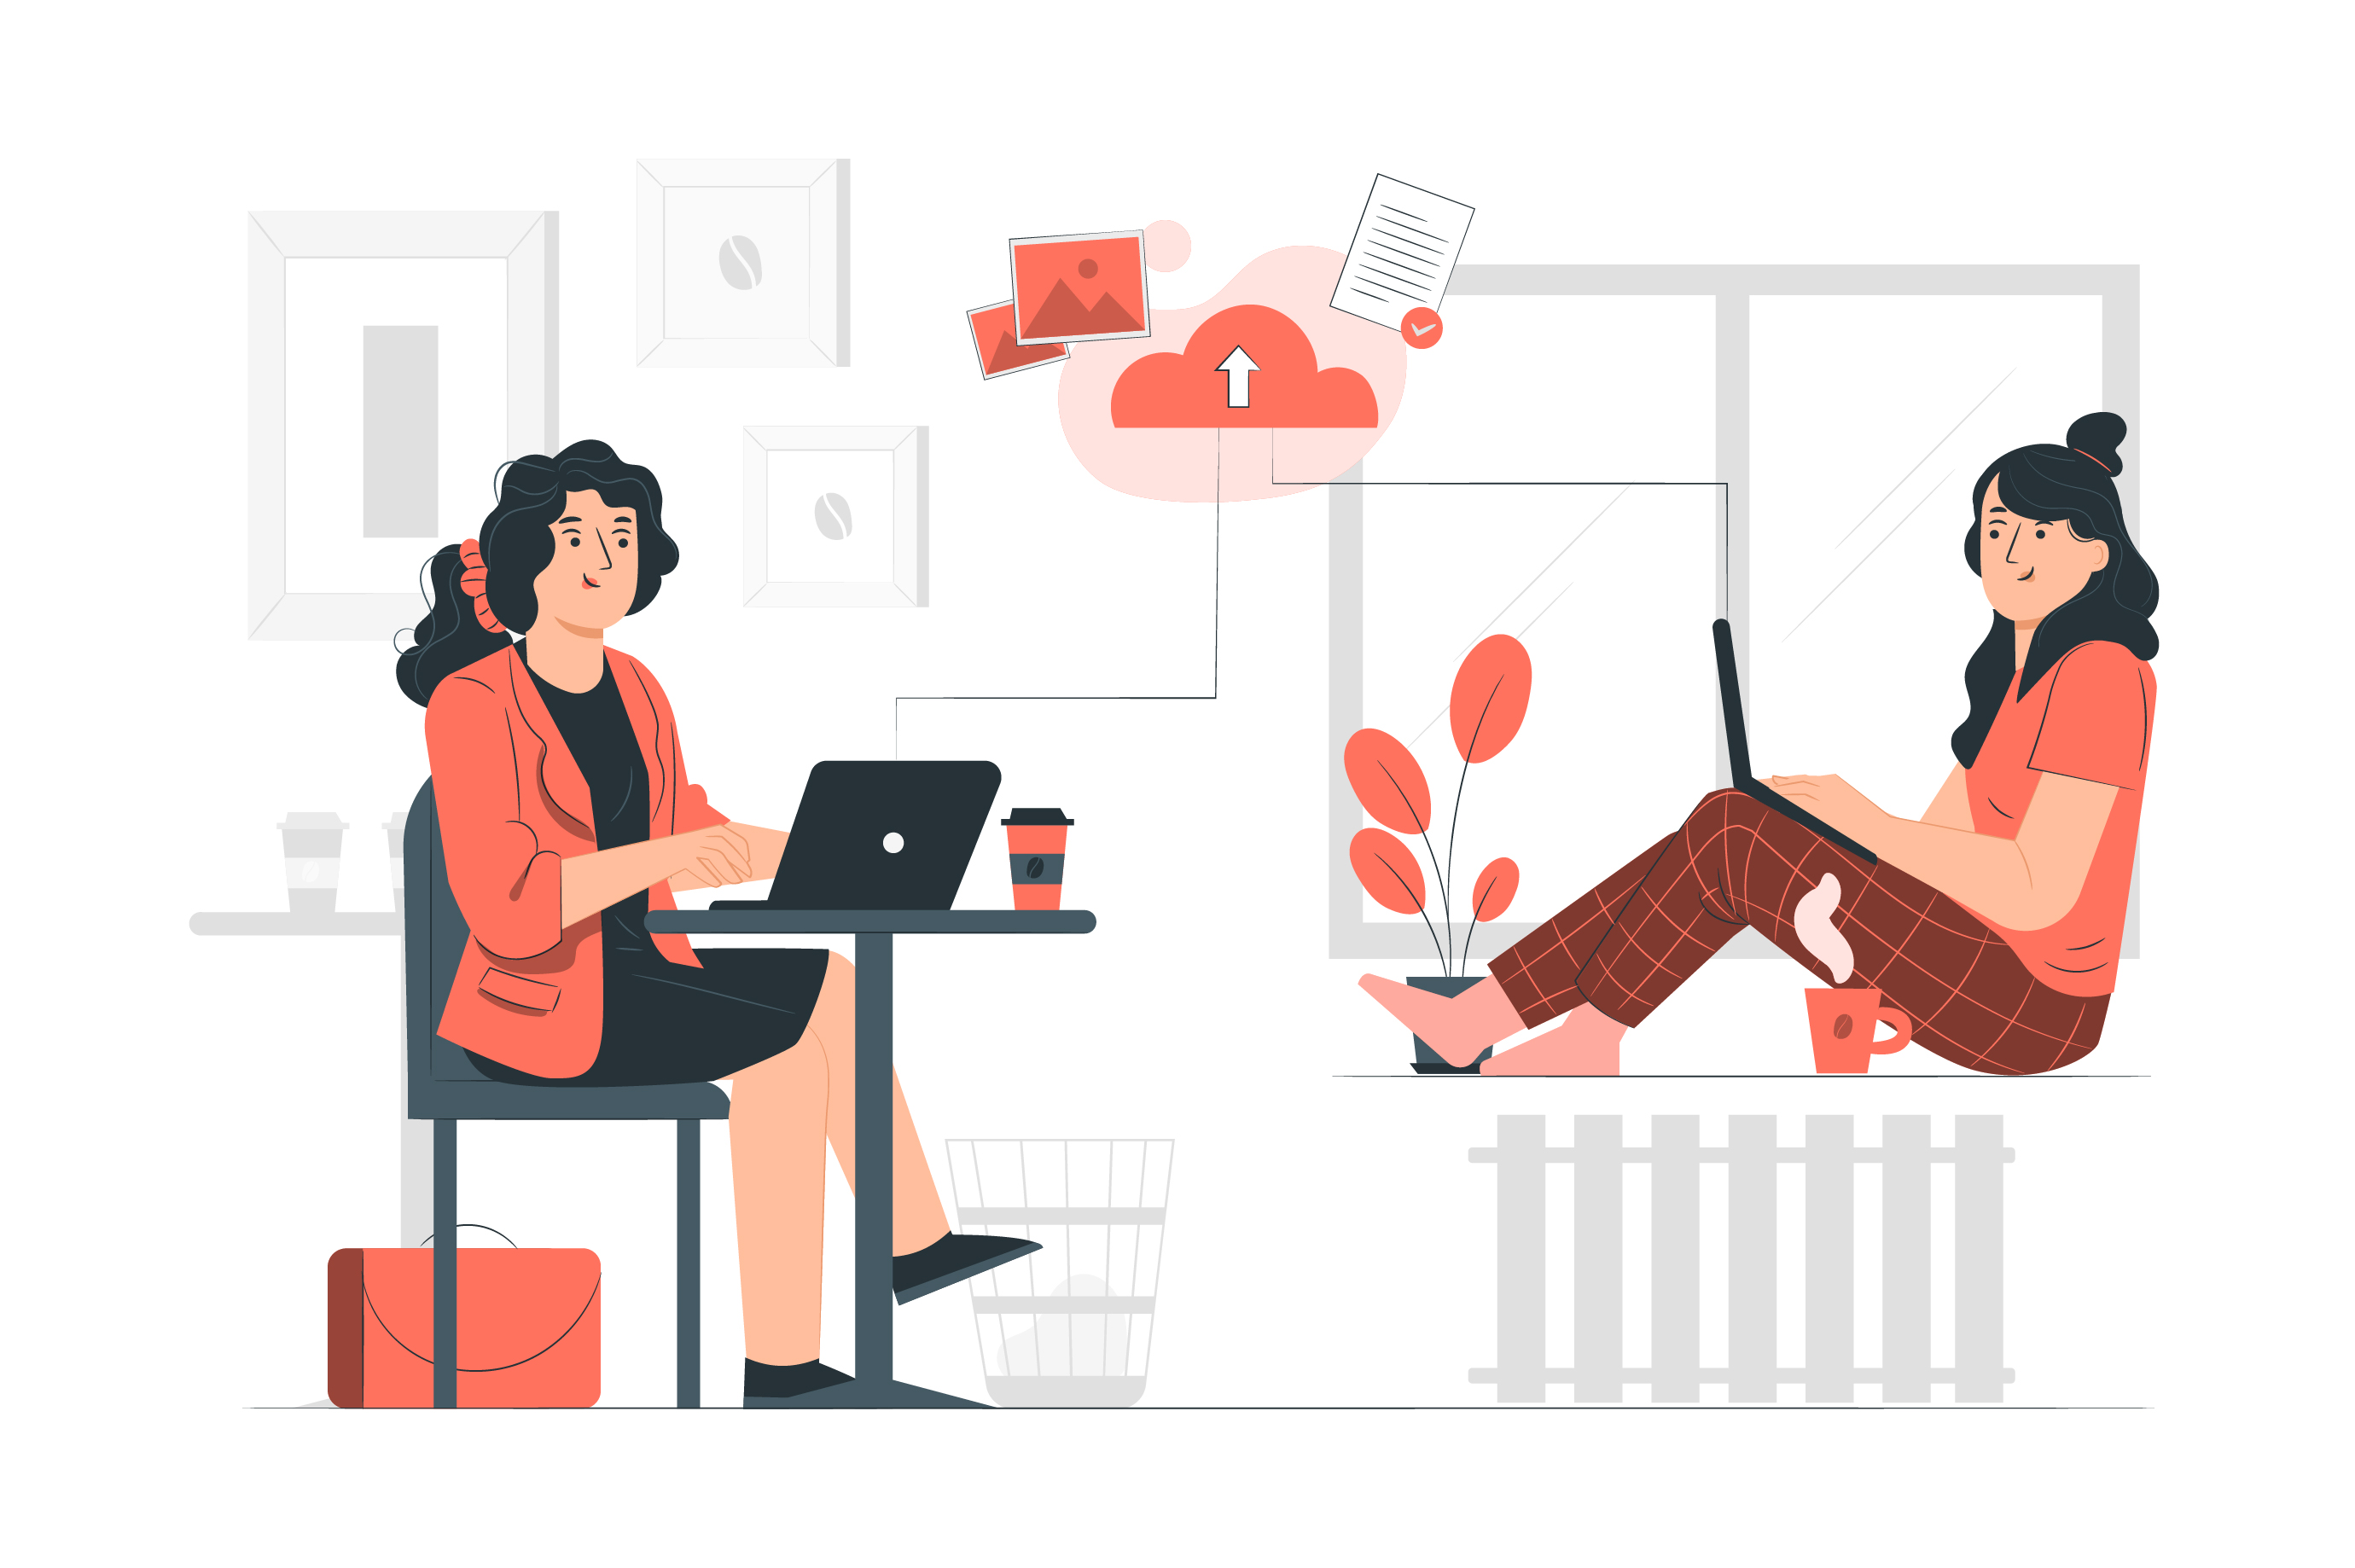 Work from home increases productivity because there are fewer distractions